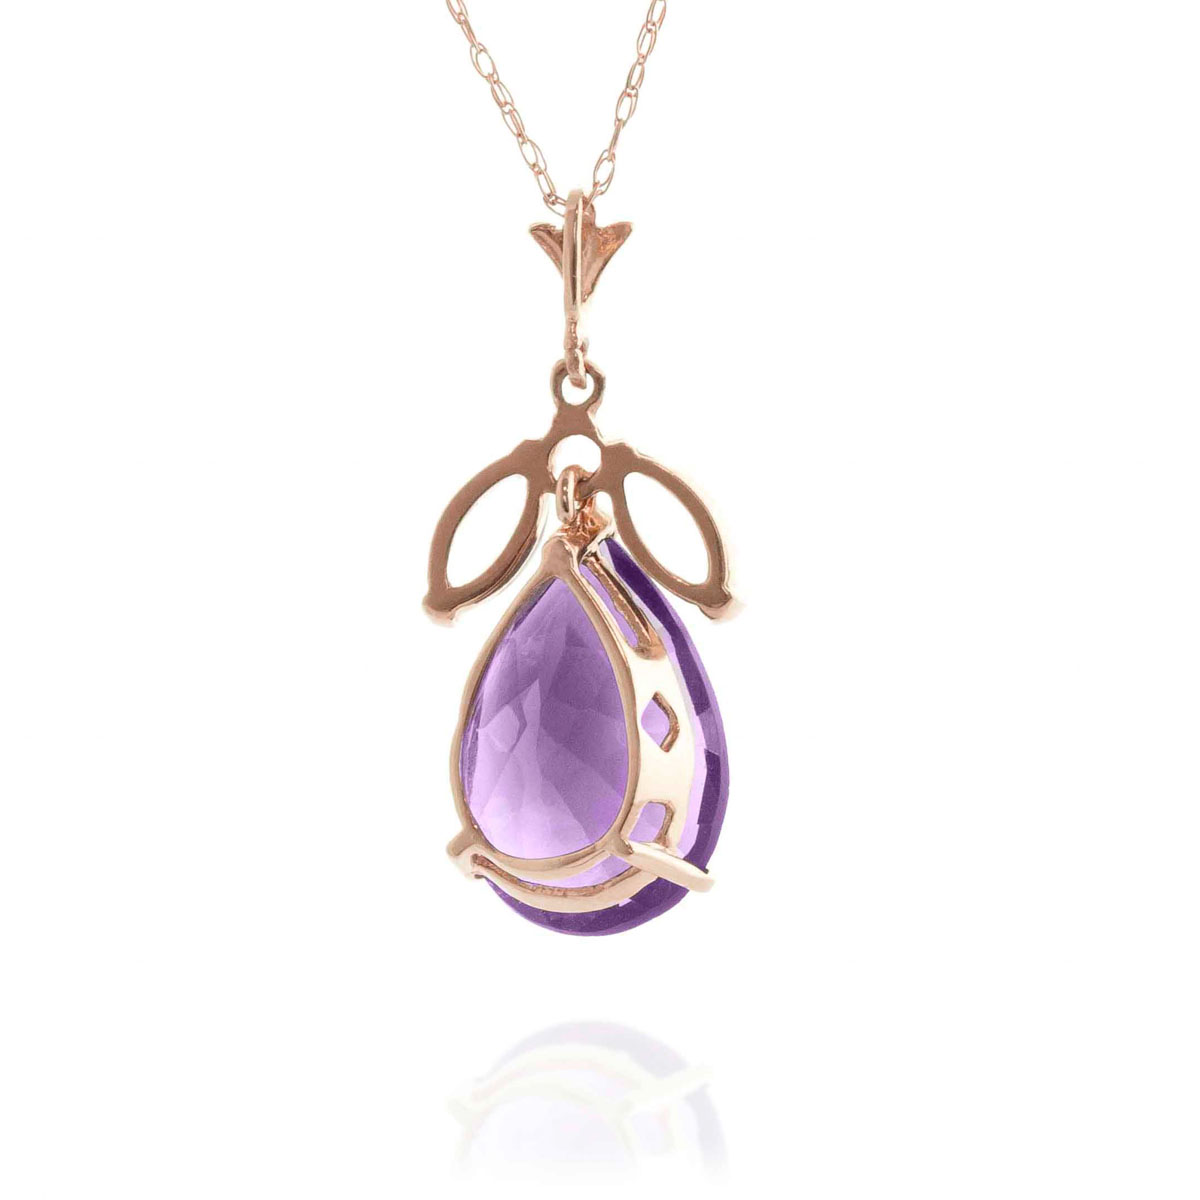 Amethyst & White Topaz Pear Drop Pendant Necklace in 9ct Rose Gold